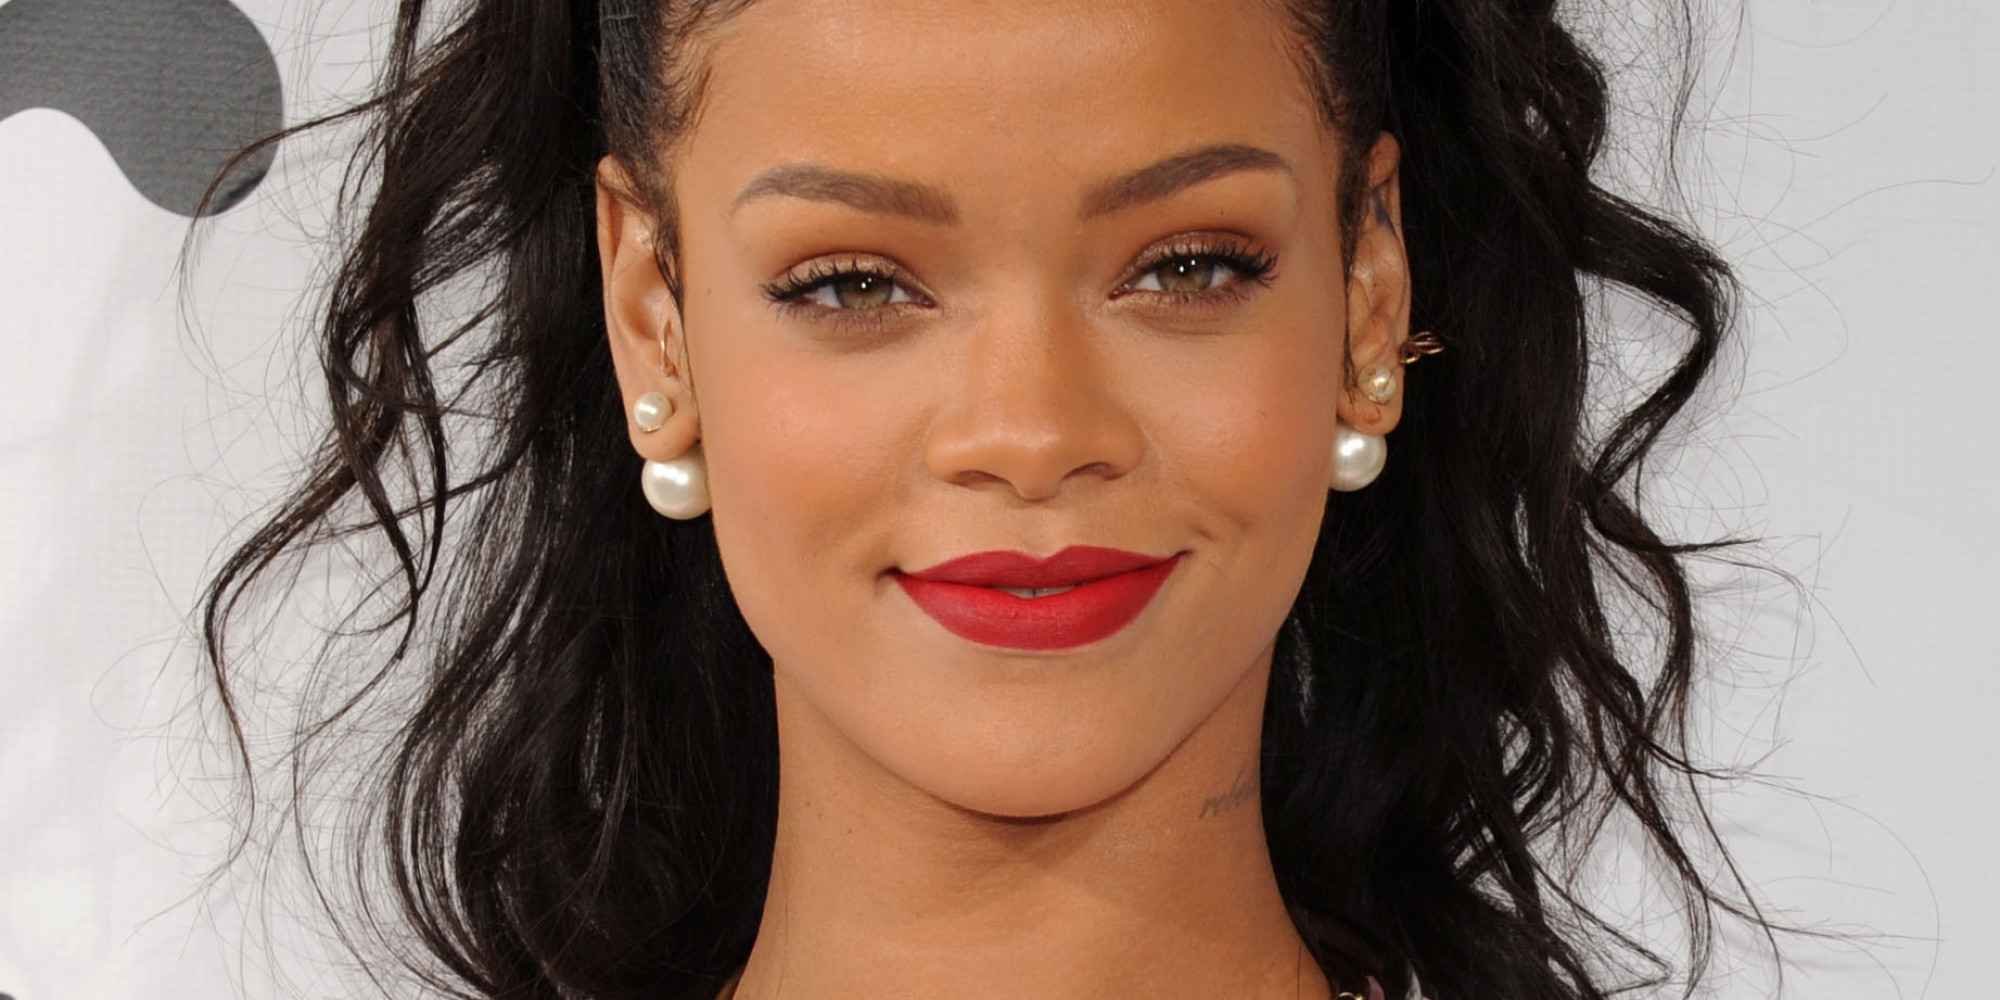 Rihanna Red Lipstick 288.42 Kb